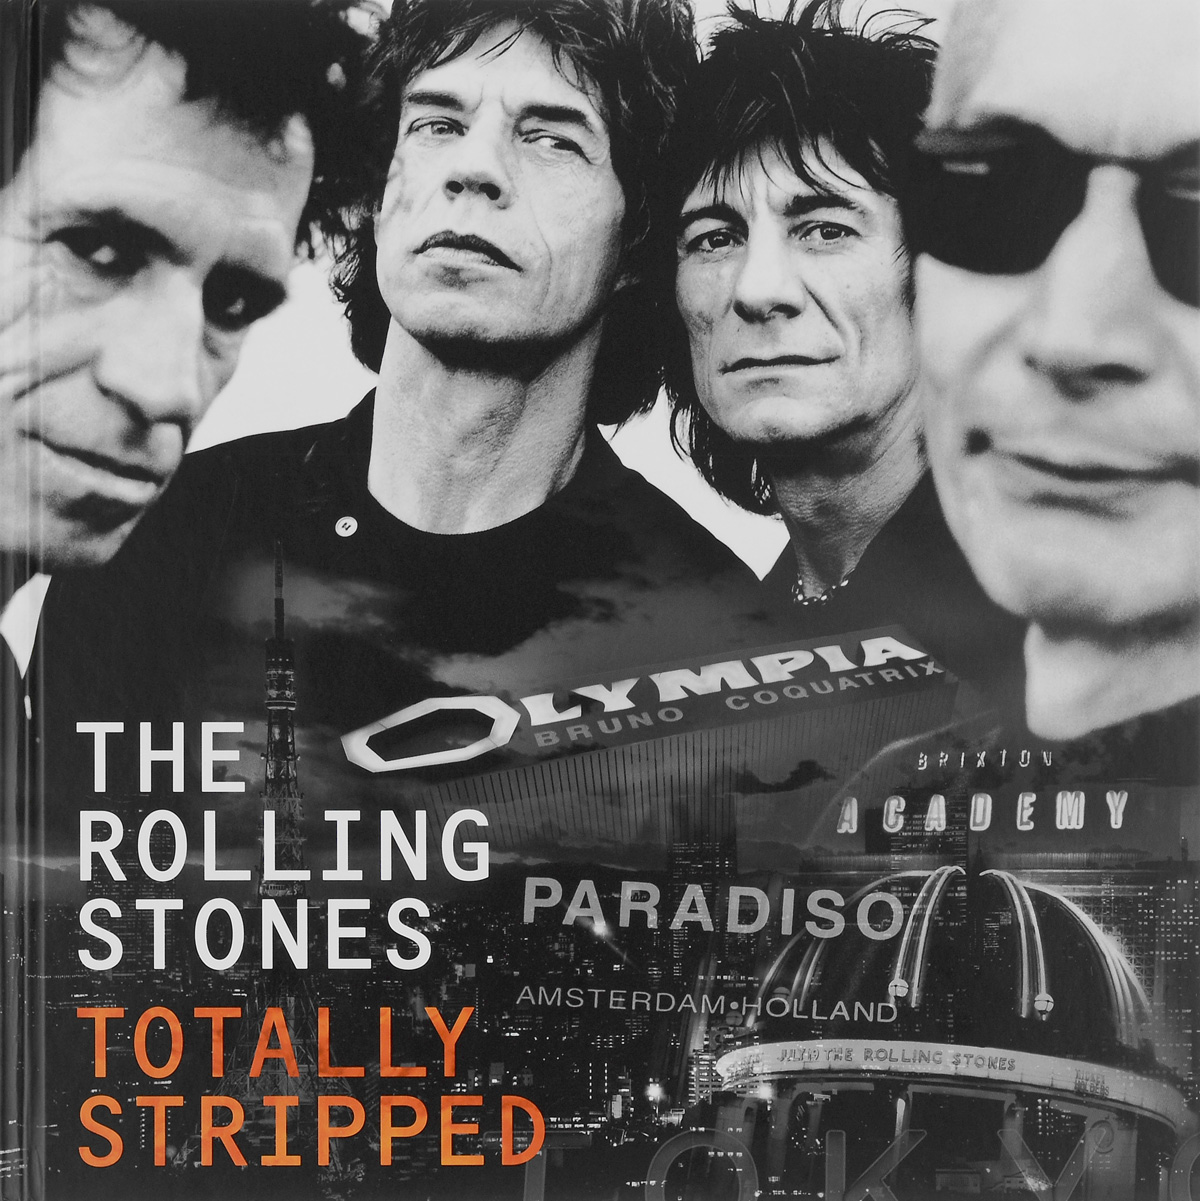 The Rolling Stones The Rolling Stones. The Totally Stripped. Deluxe Edition (CD + 4 DVD) touchstone teacher s edition 4 with audio cd